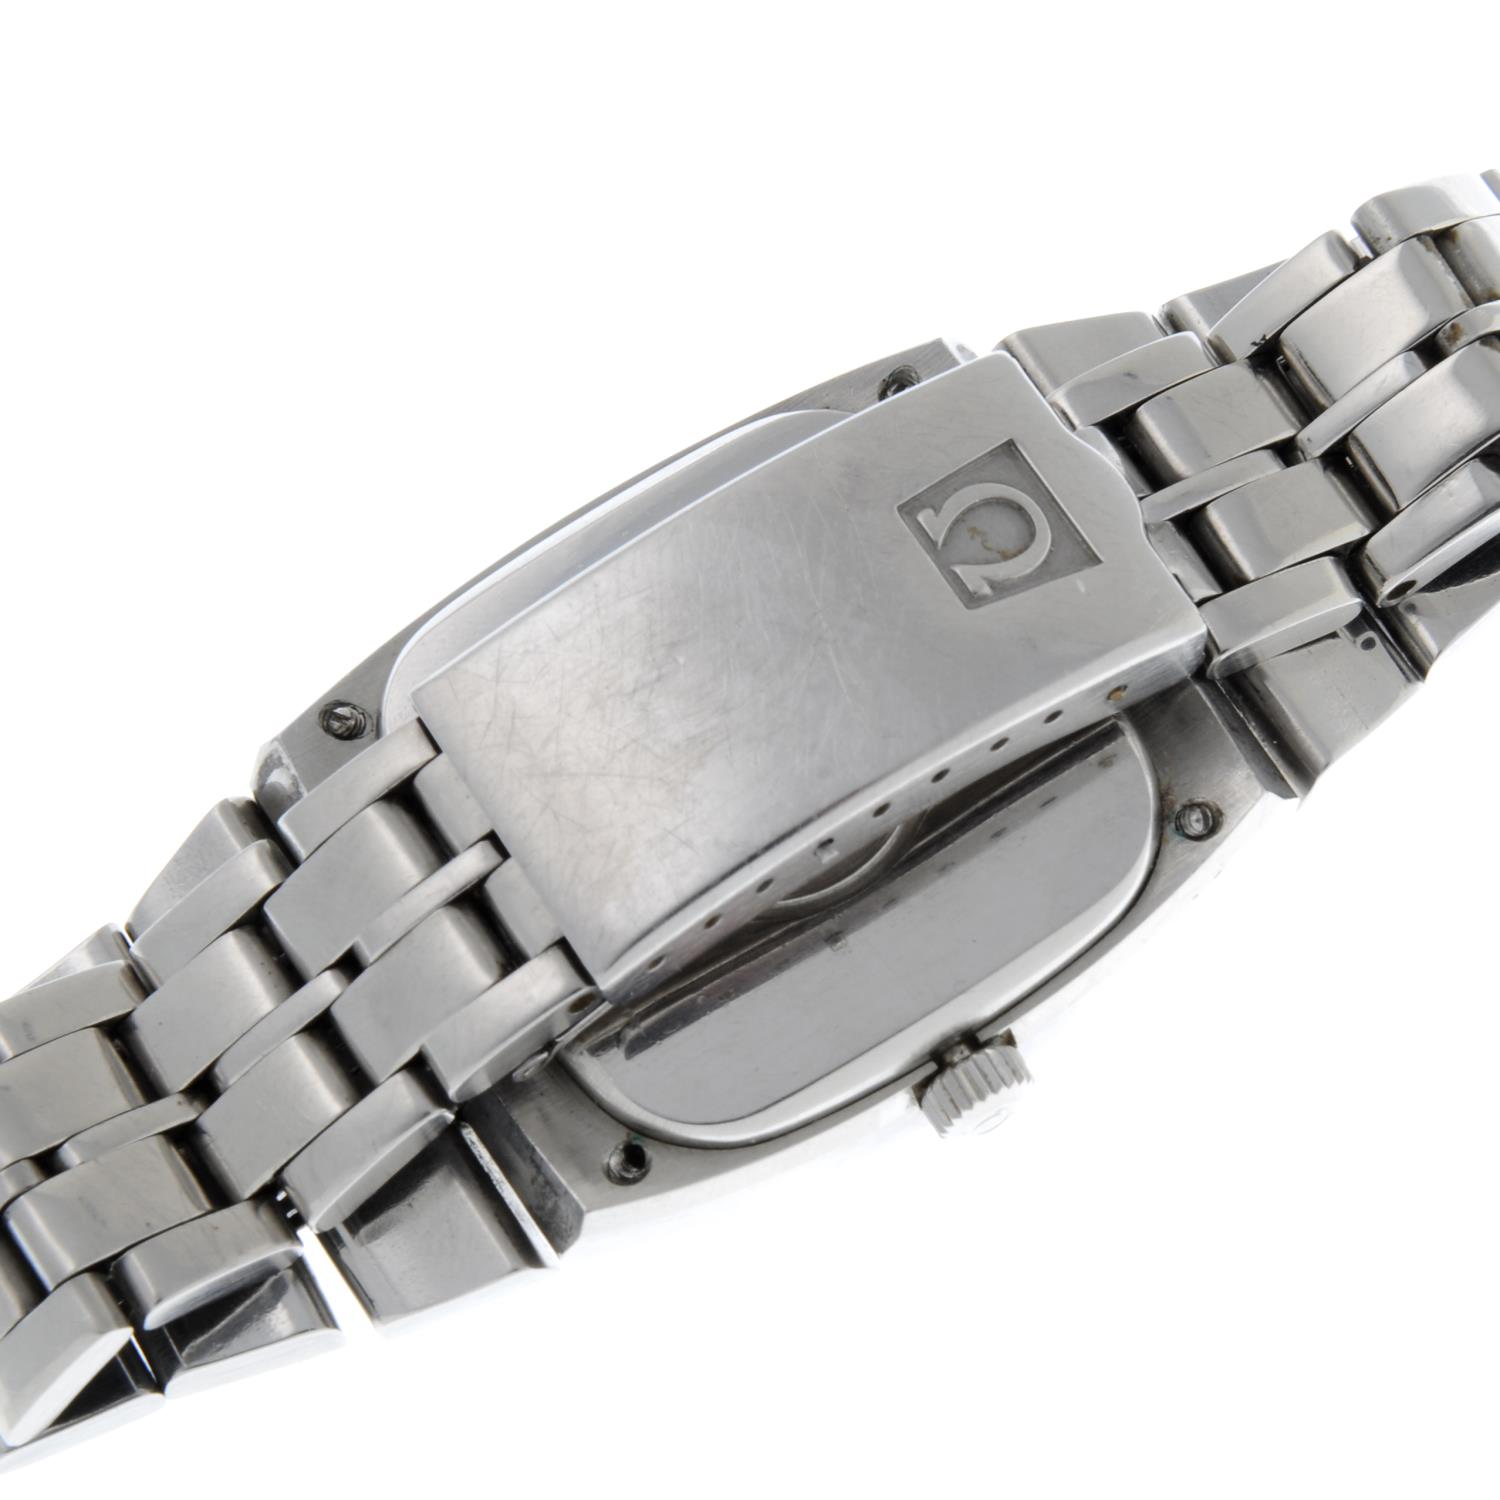 OMEGA - a Constellation bracelet watch. - Image 2 of 4